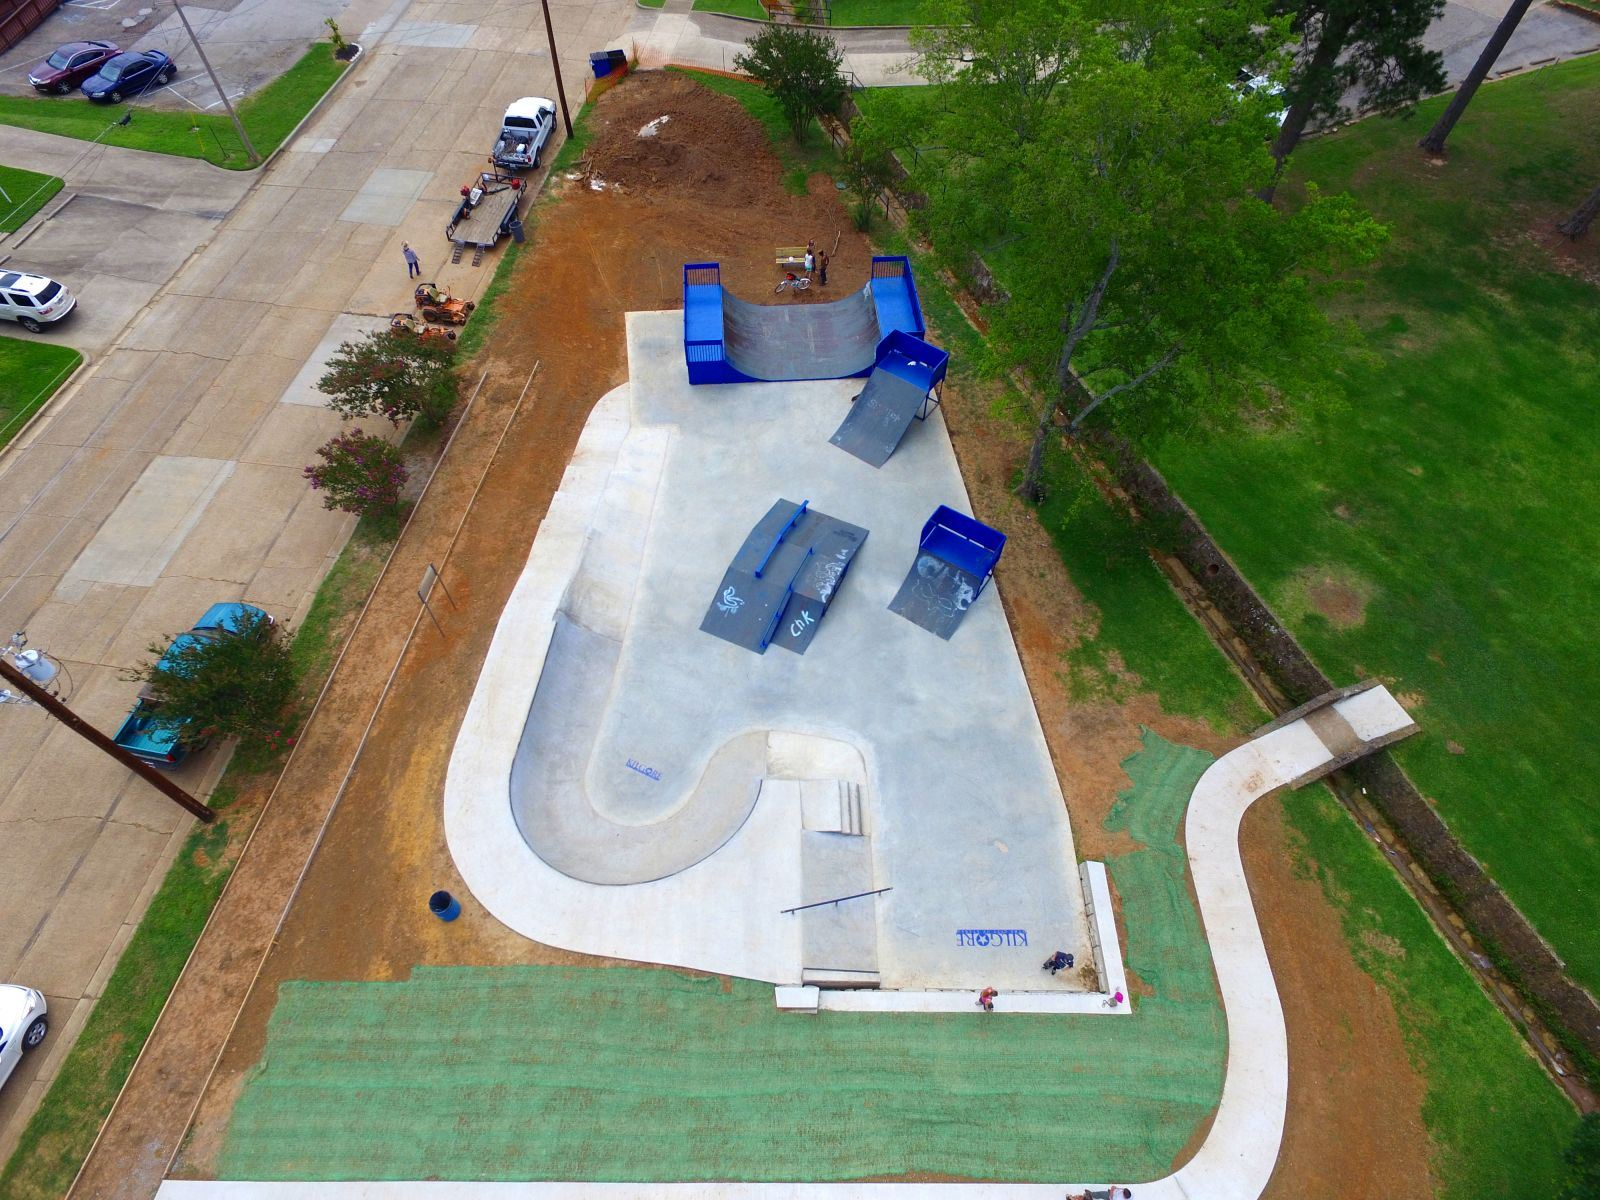 Aerial View of the Skate Park